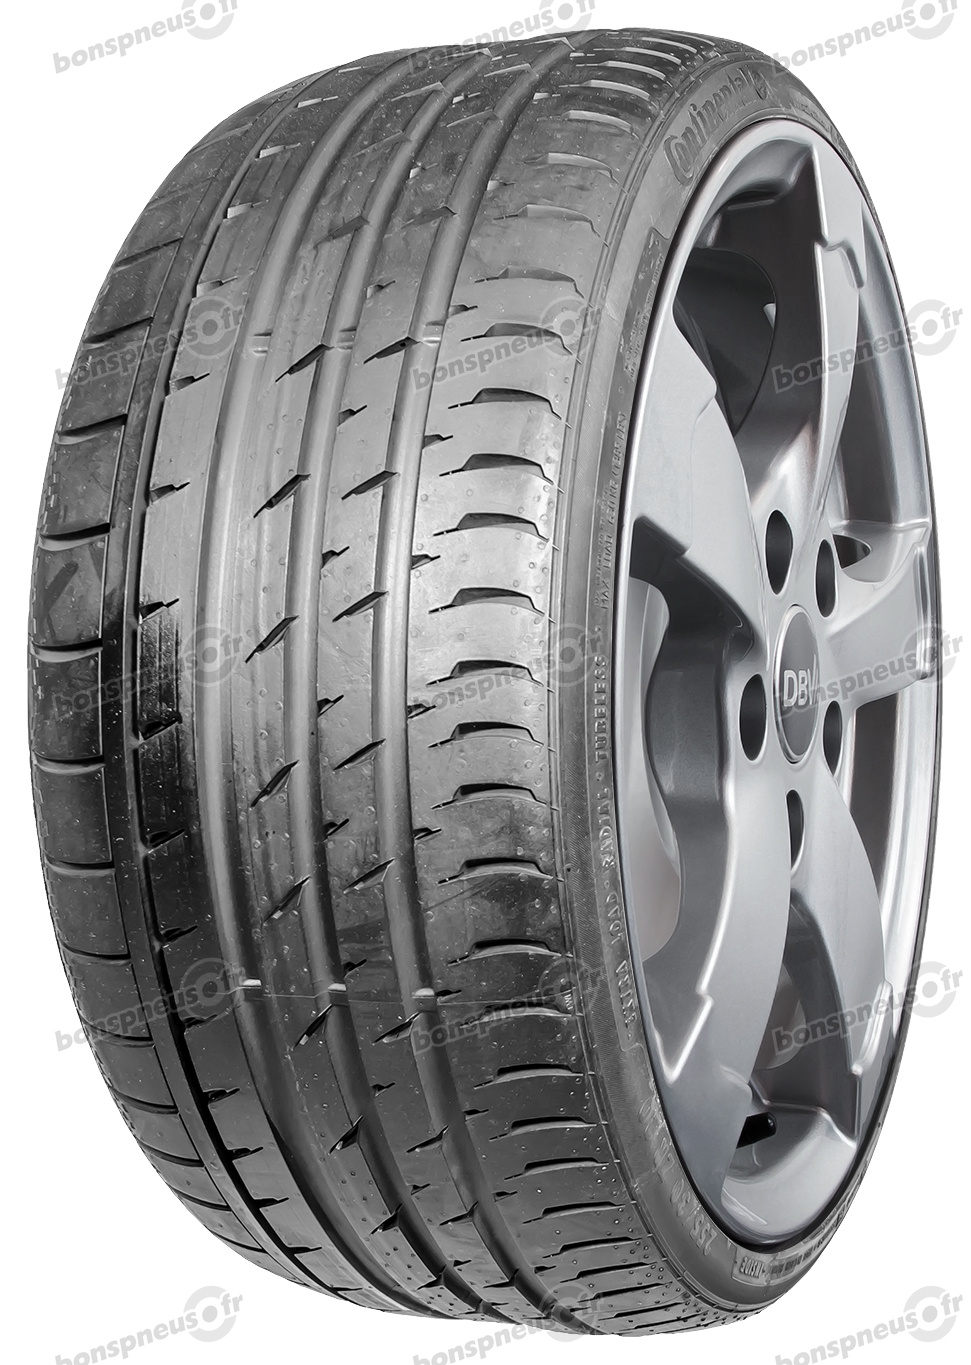 225/45 R17 91W SportContact 3 MO FR  SportContact 3 MO FR